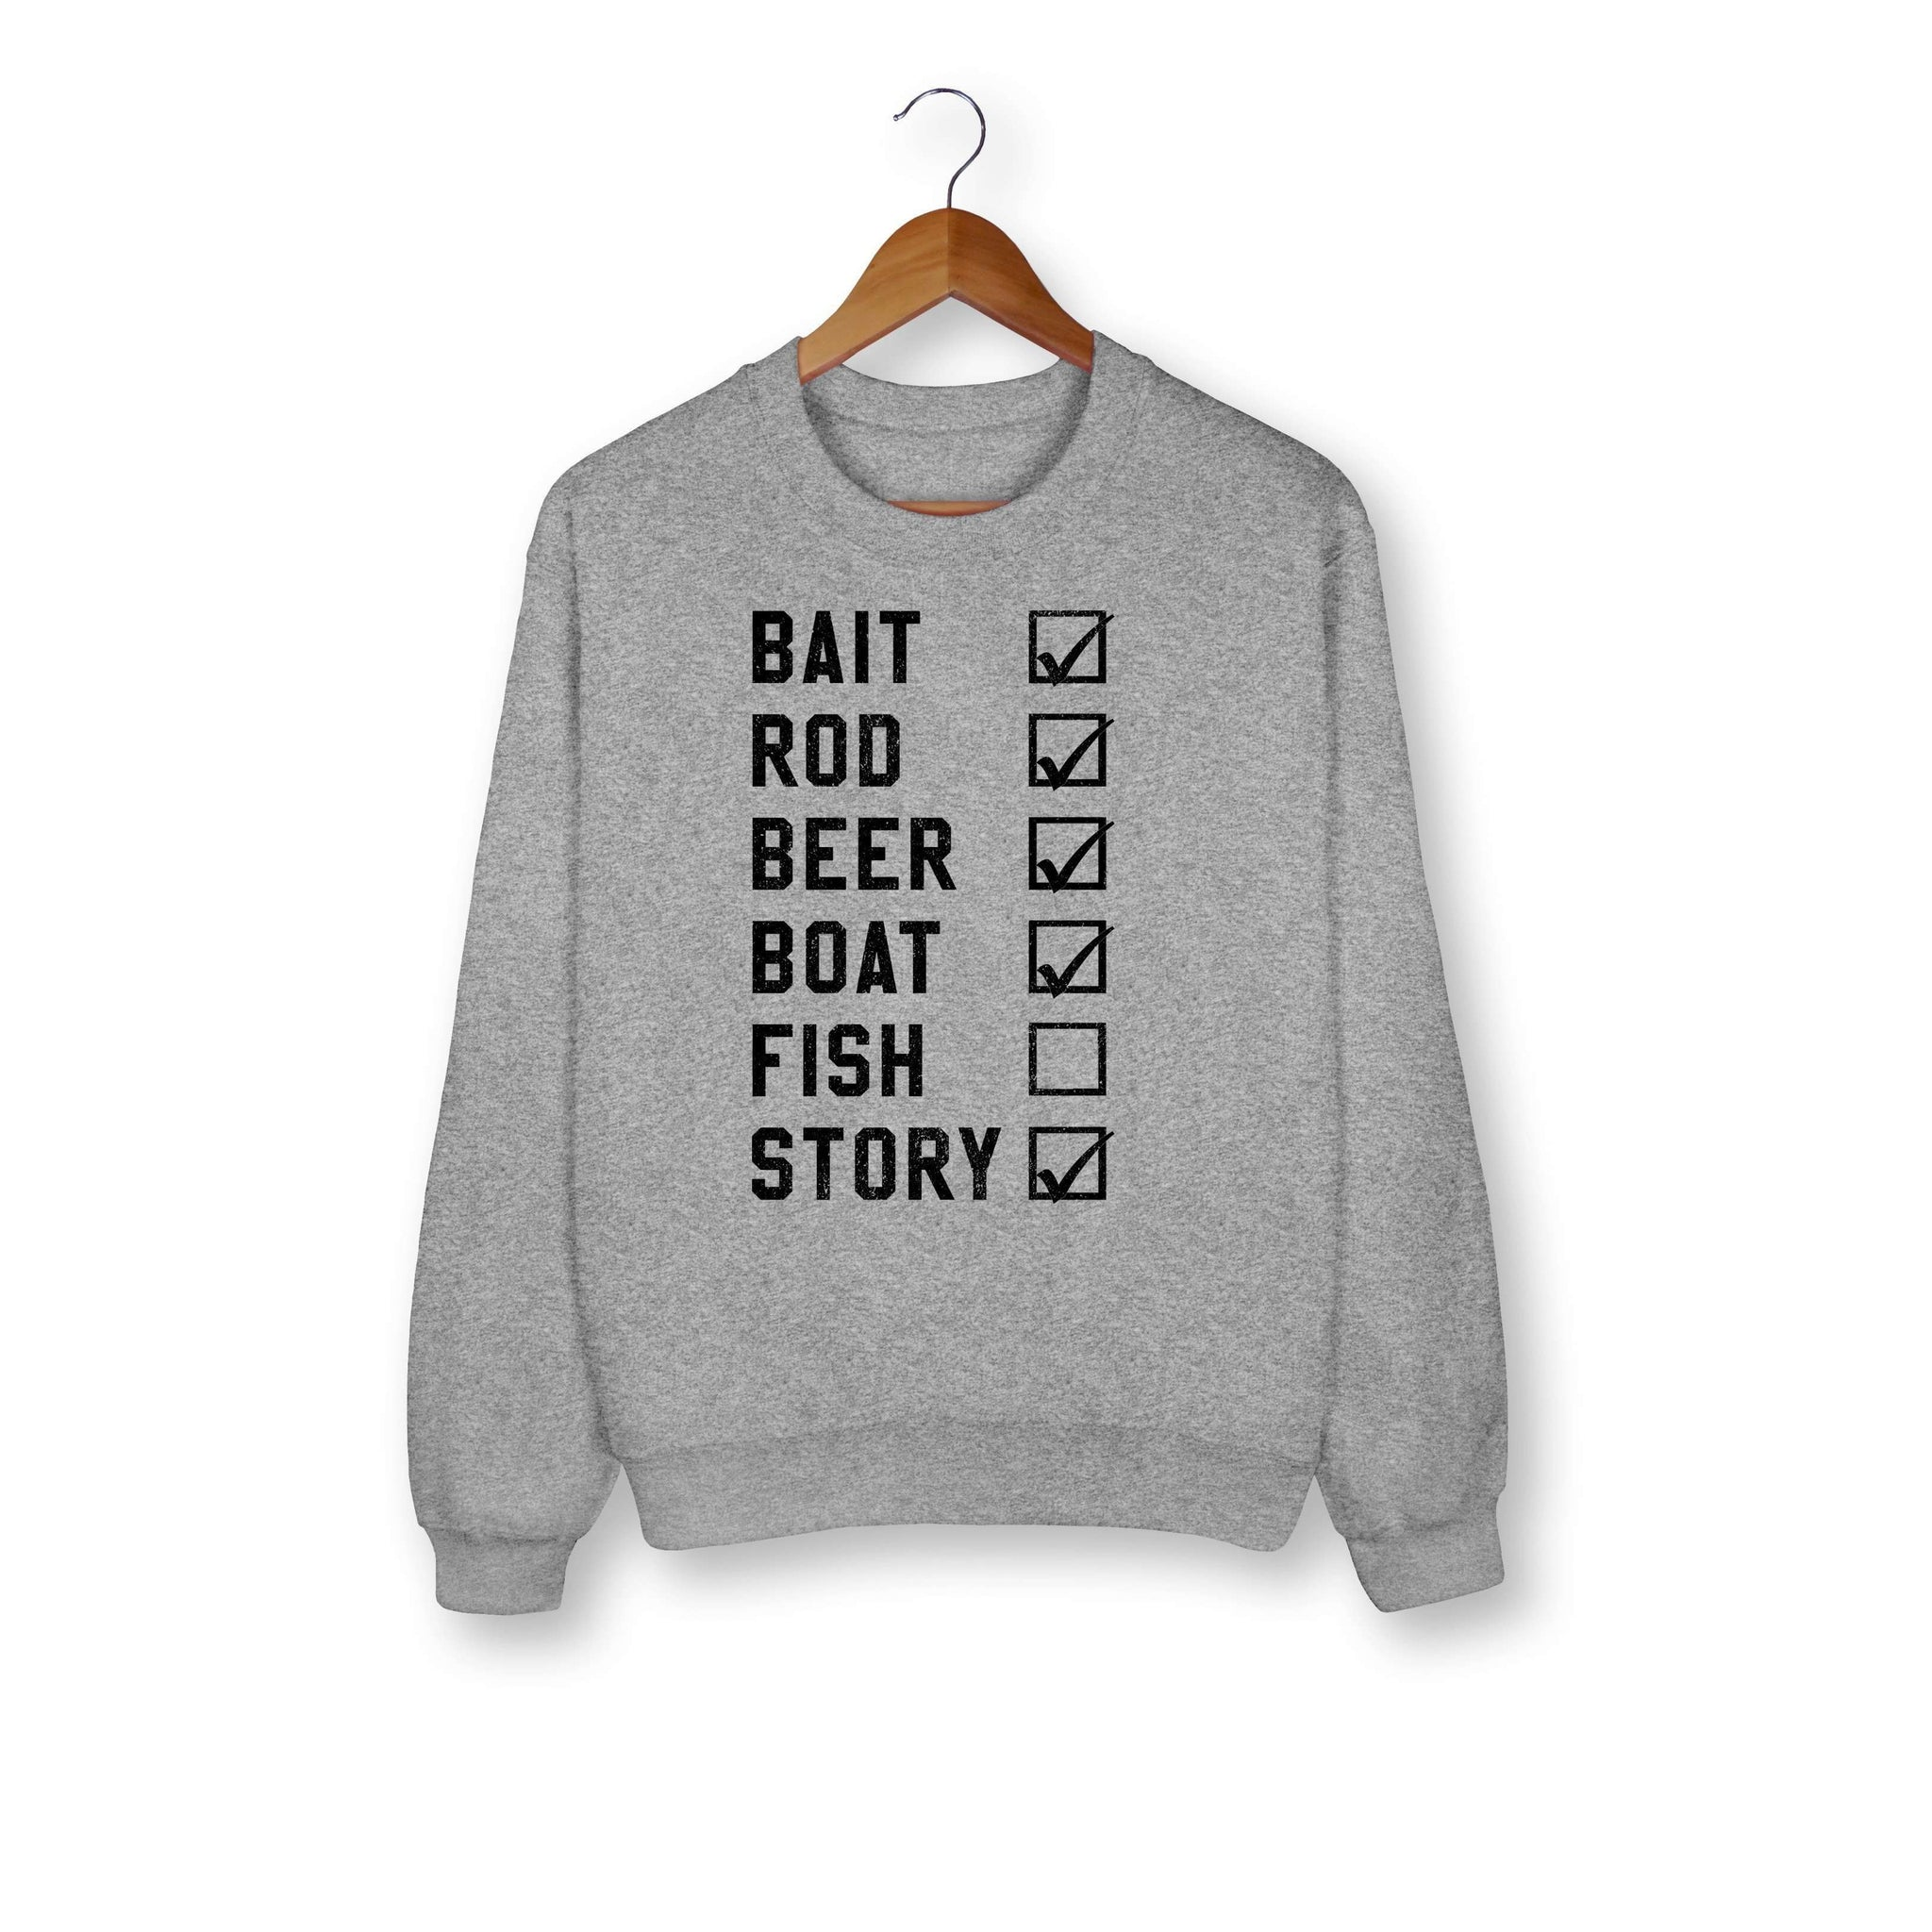 Fishing Check List Sweatshirt